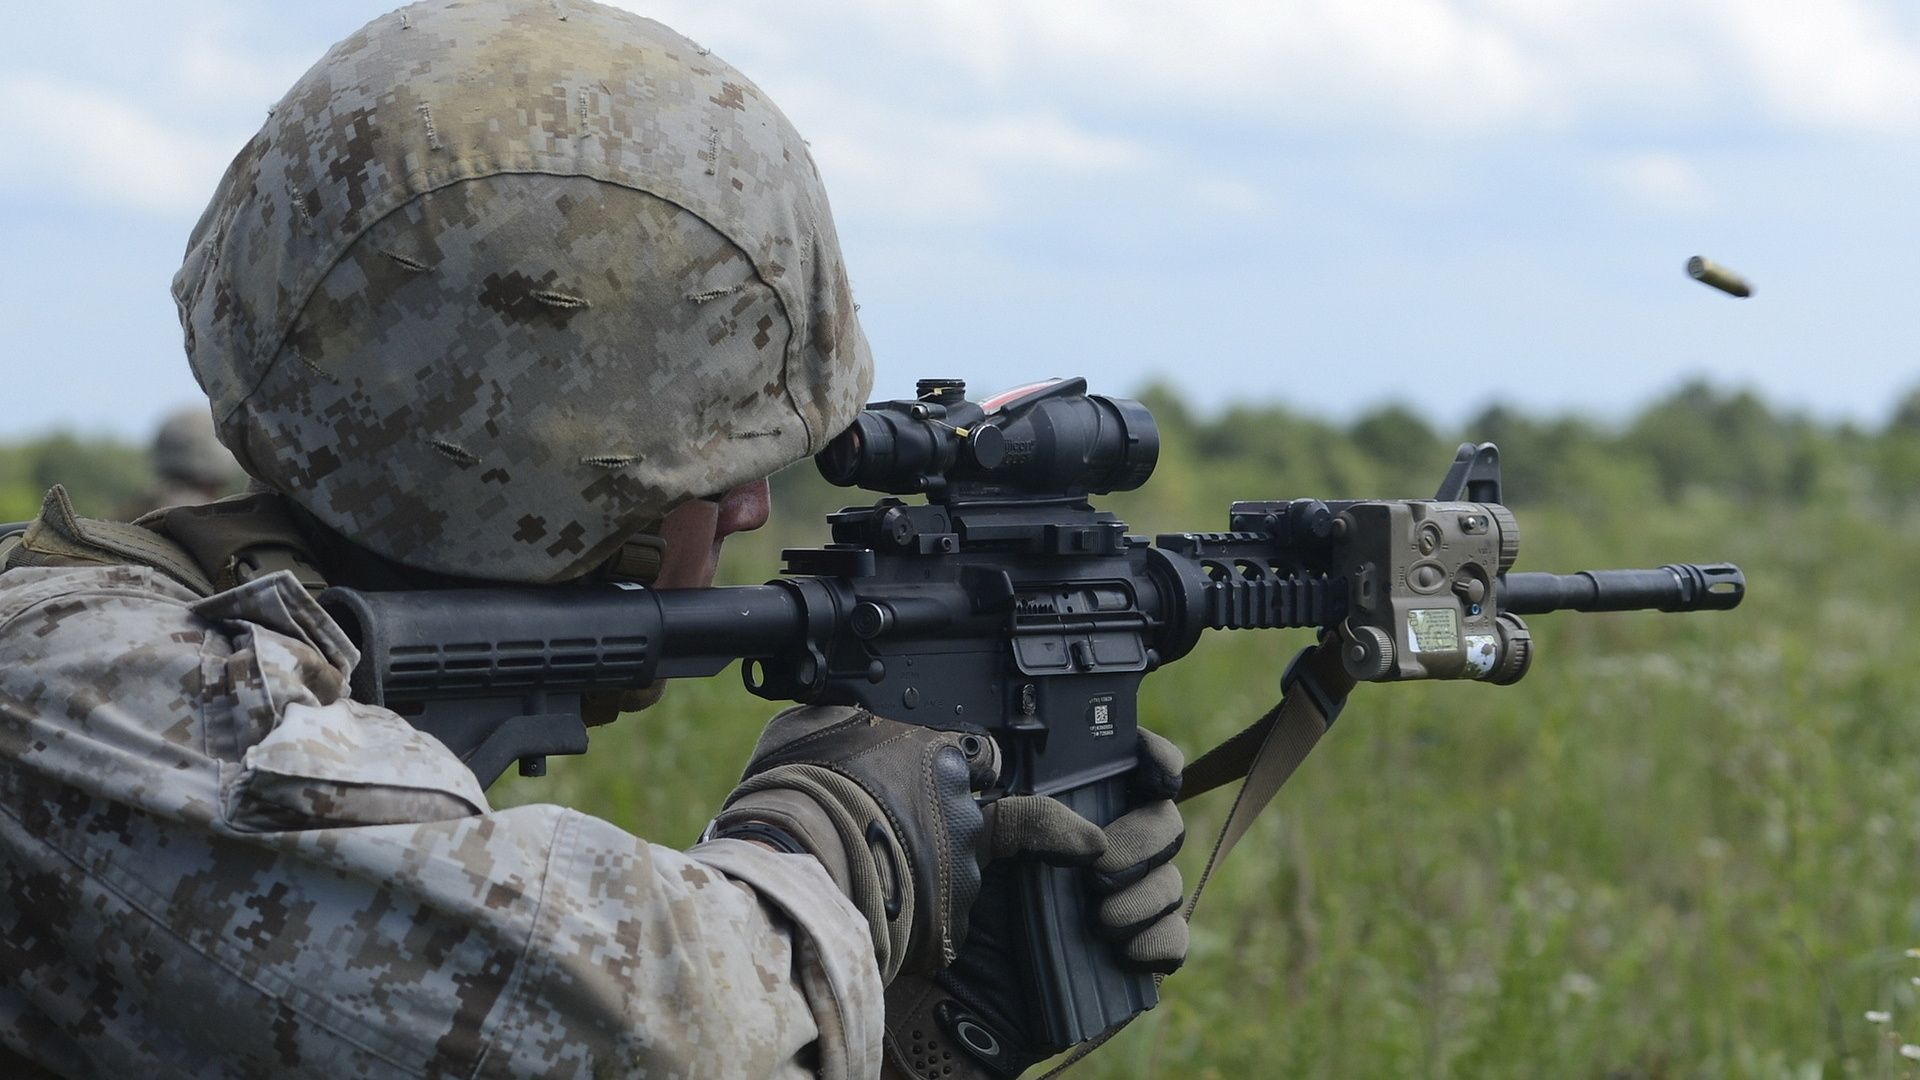 Hd Wallpapers Soldiers, Weapons, United States Marine Corps